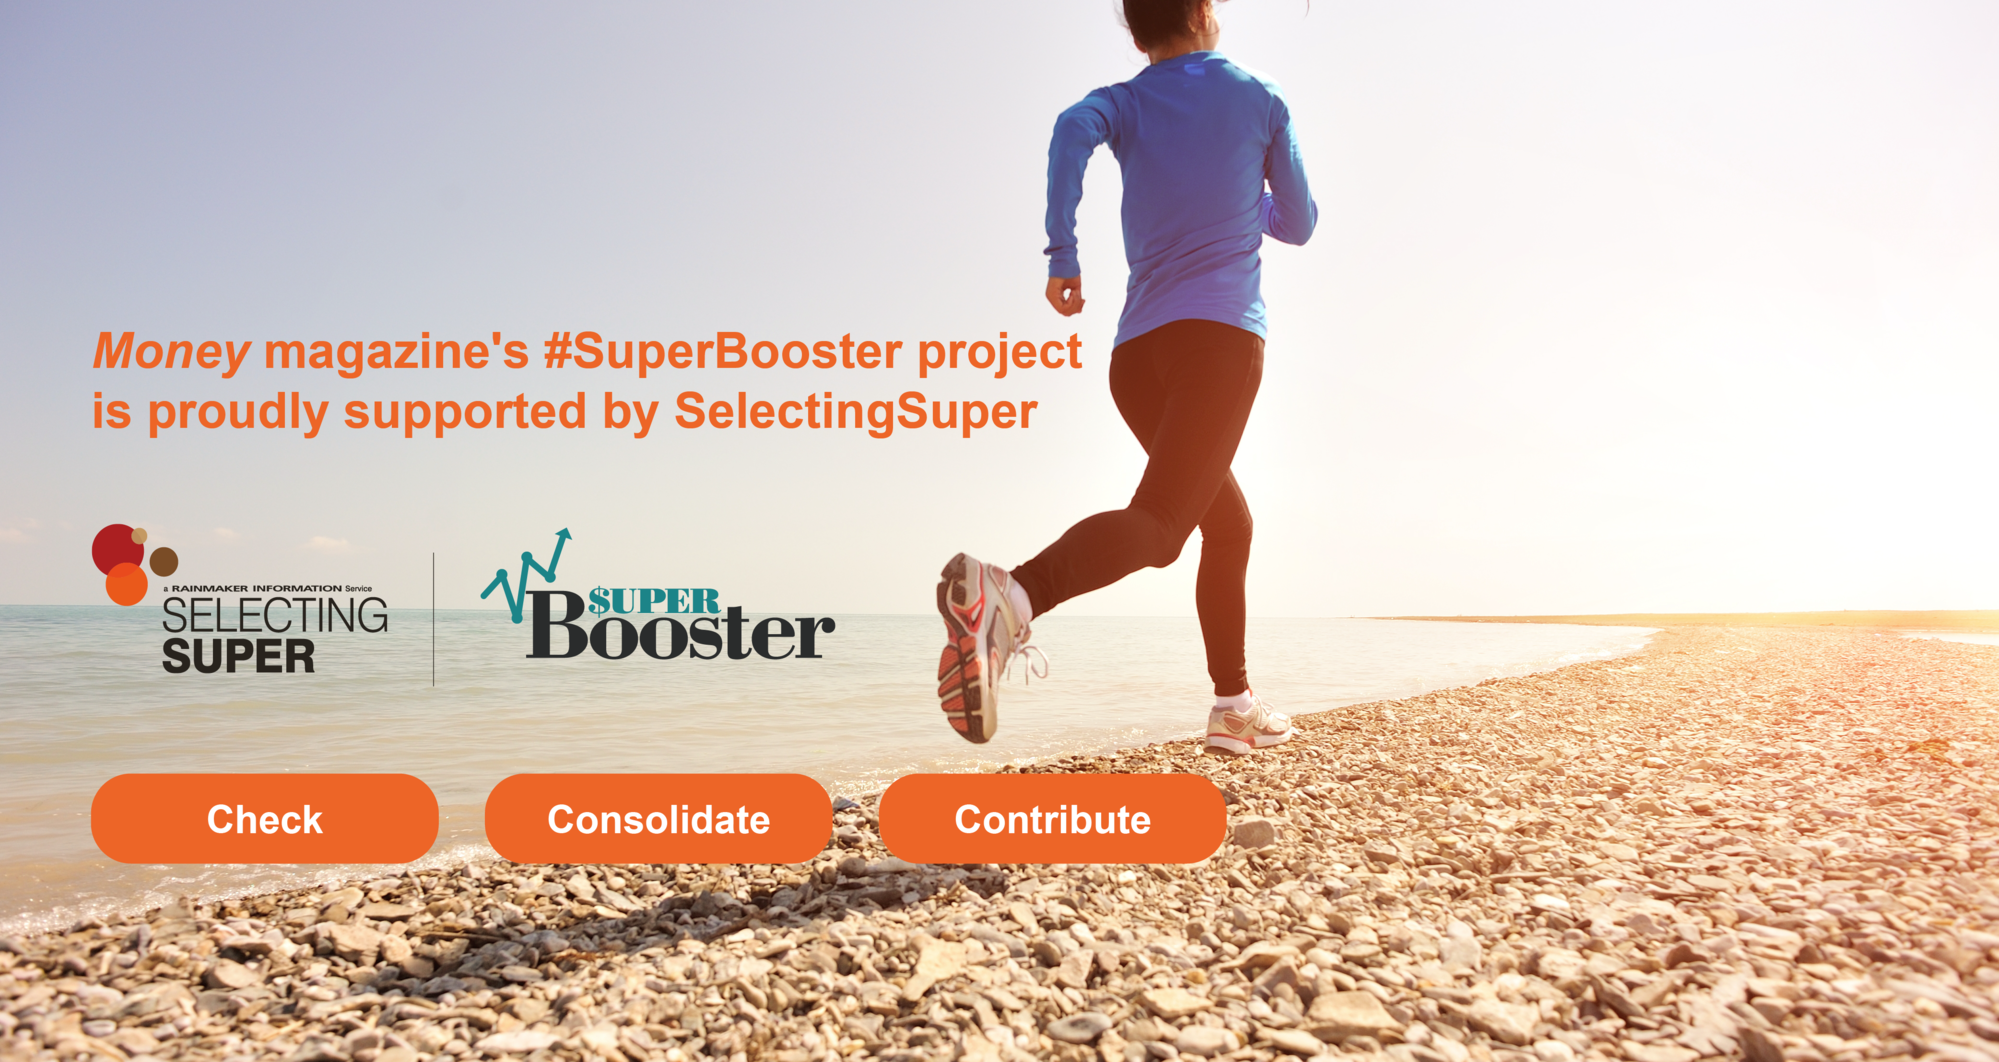 www.moneymag.com.au SuperBooster campaign. Lady running